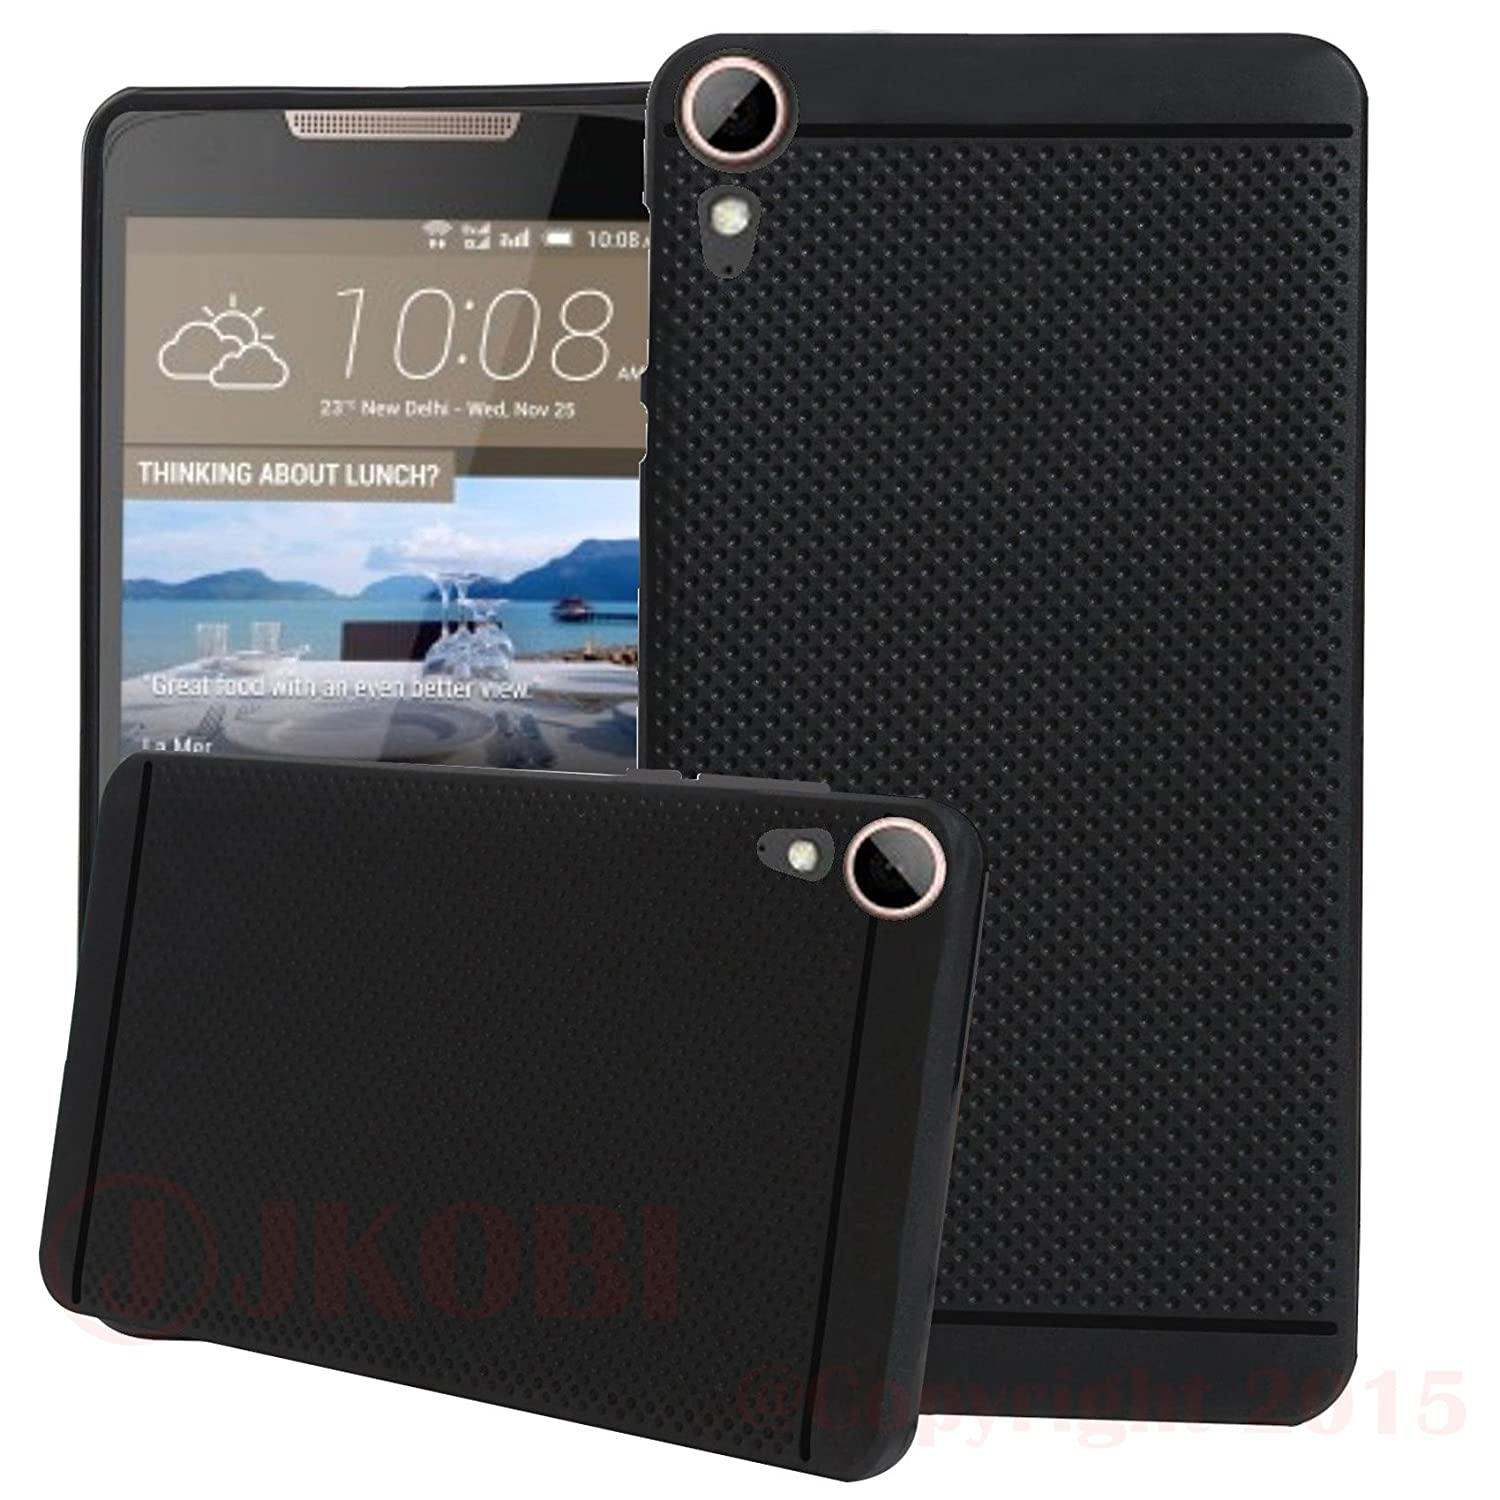 Jkobi Classic Dotted Designed Soft Rubberised Back Case Cover For Htc  Desire 828 Dual Sim